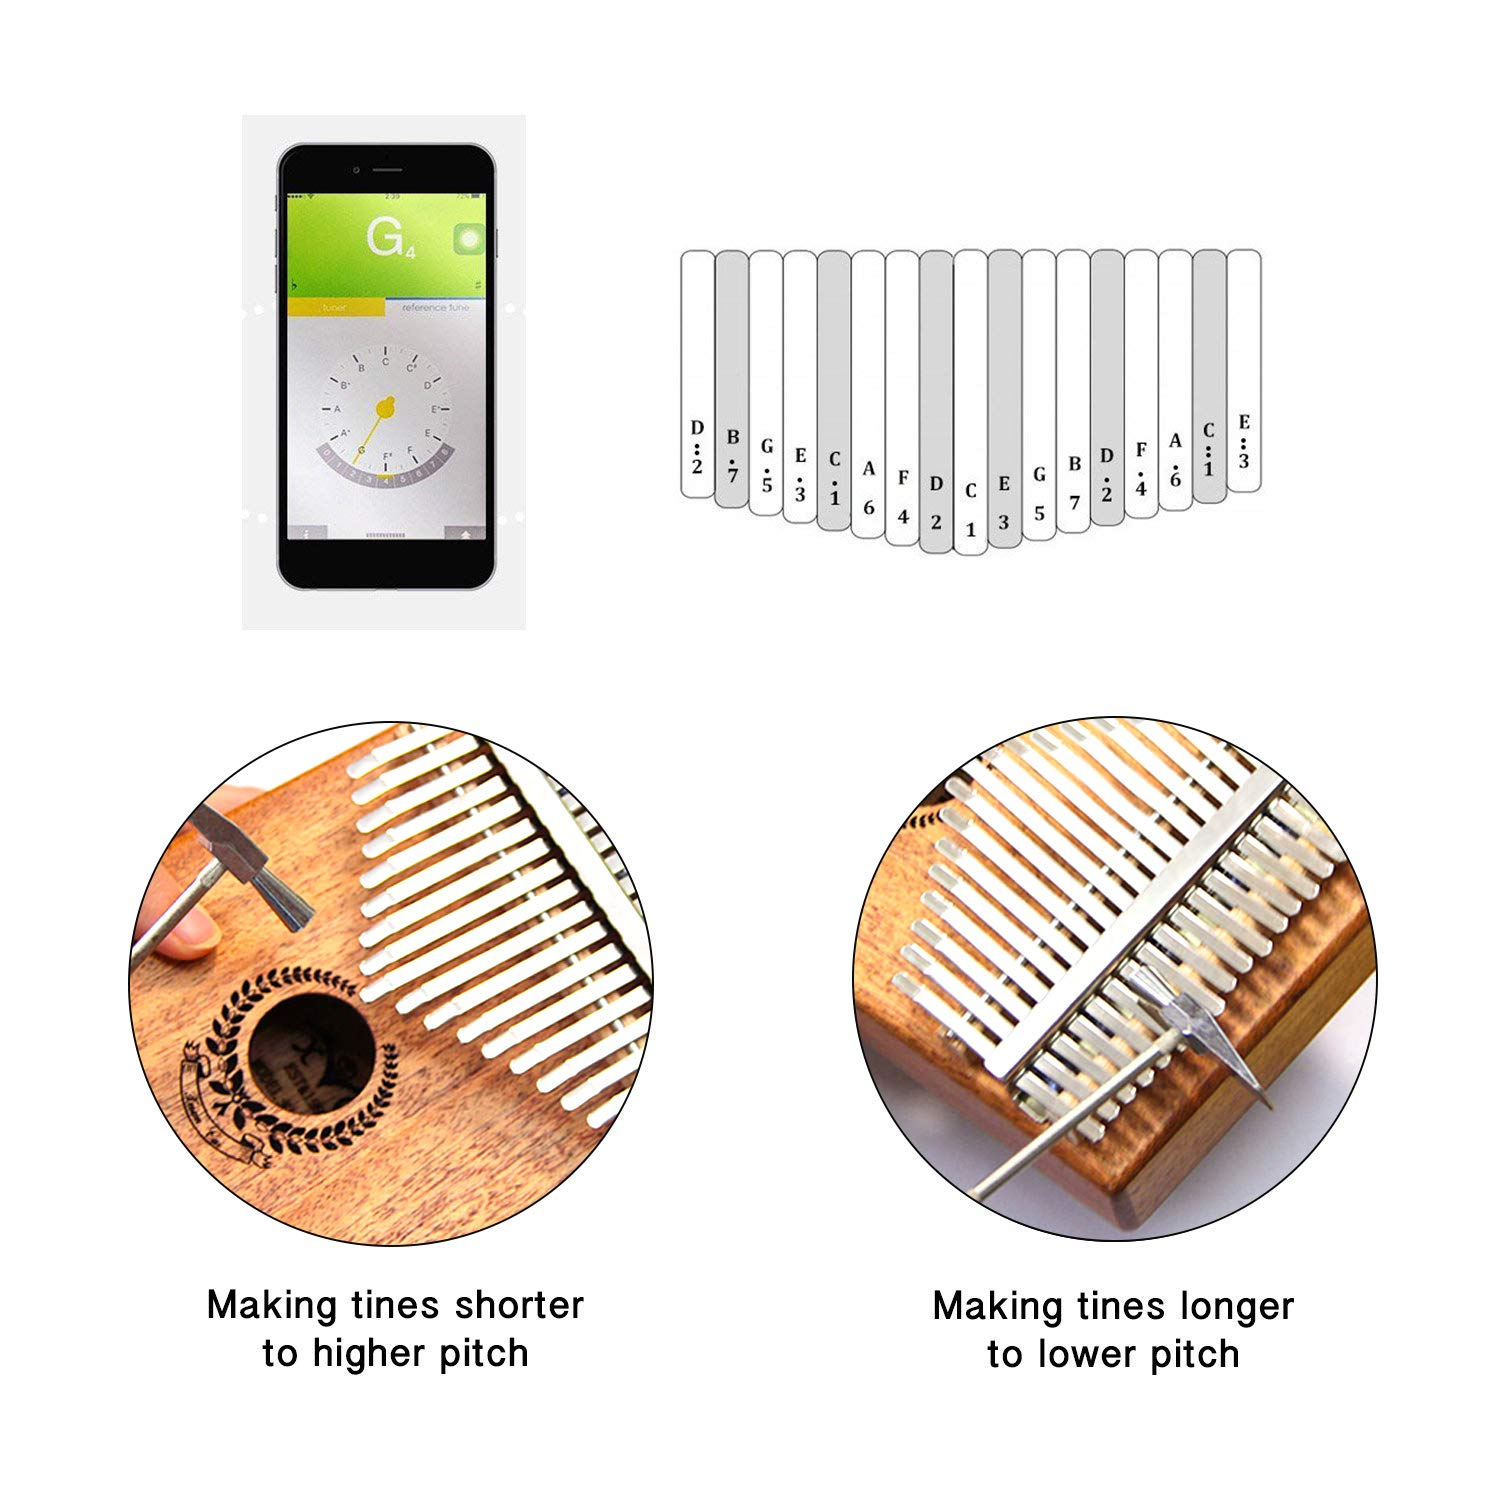 Kalimba 17 Keys Thumb Piano builts-in EVA high-performance protective box, tuning hammer and study instruction best gift For Kids Without Any Musical Basis Or Musician by Higohome (Image #5)